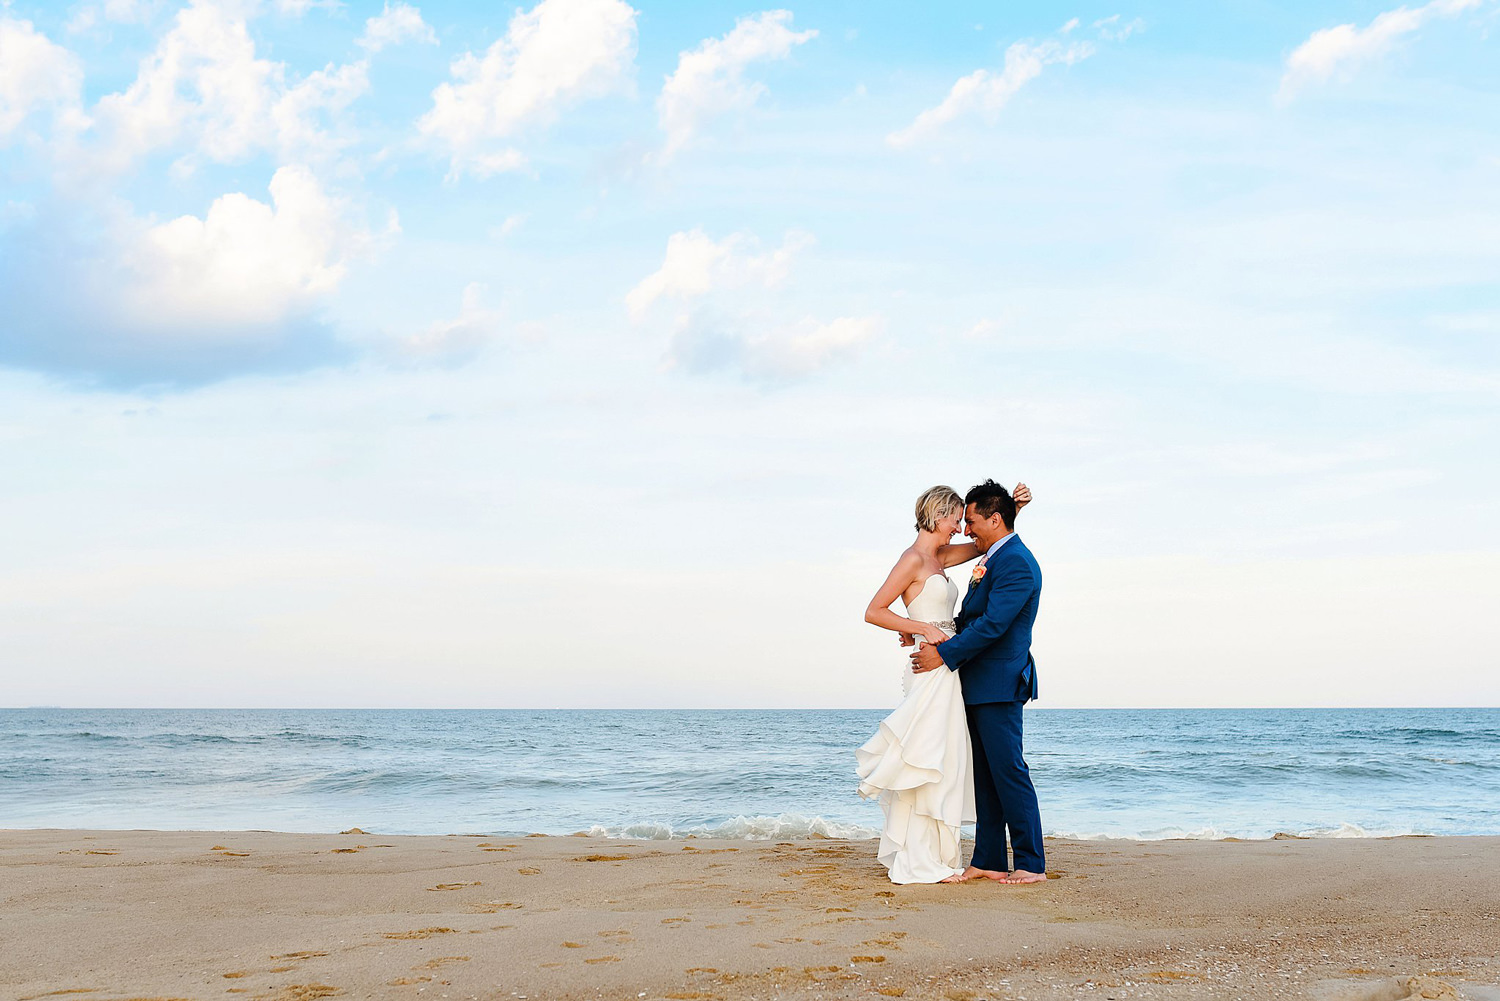 bride-and-groom-dancing-on-beach-blue-sky-beach-wedding-melissa-bliss-photography.jpg